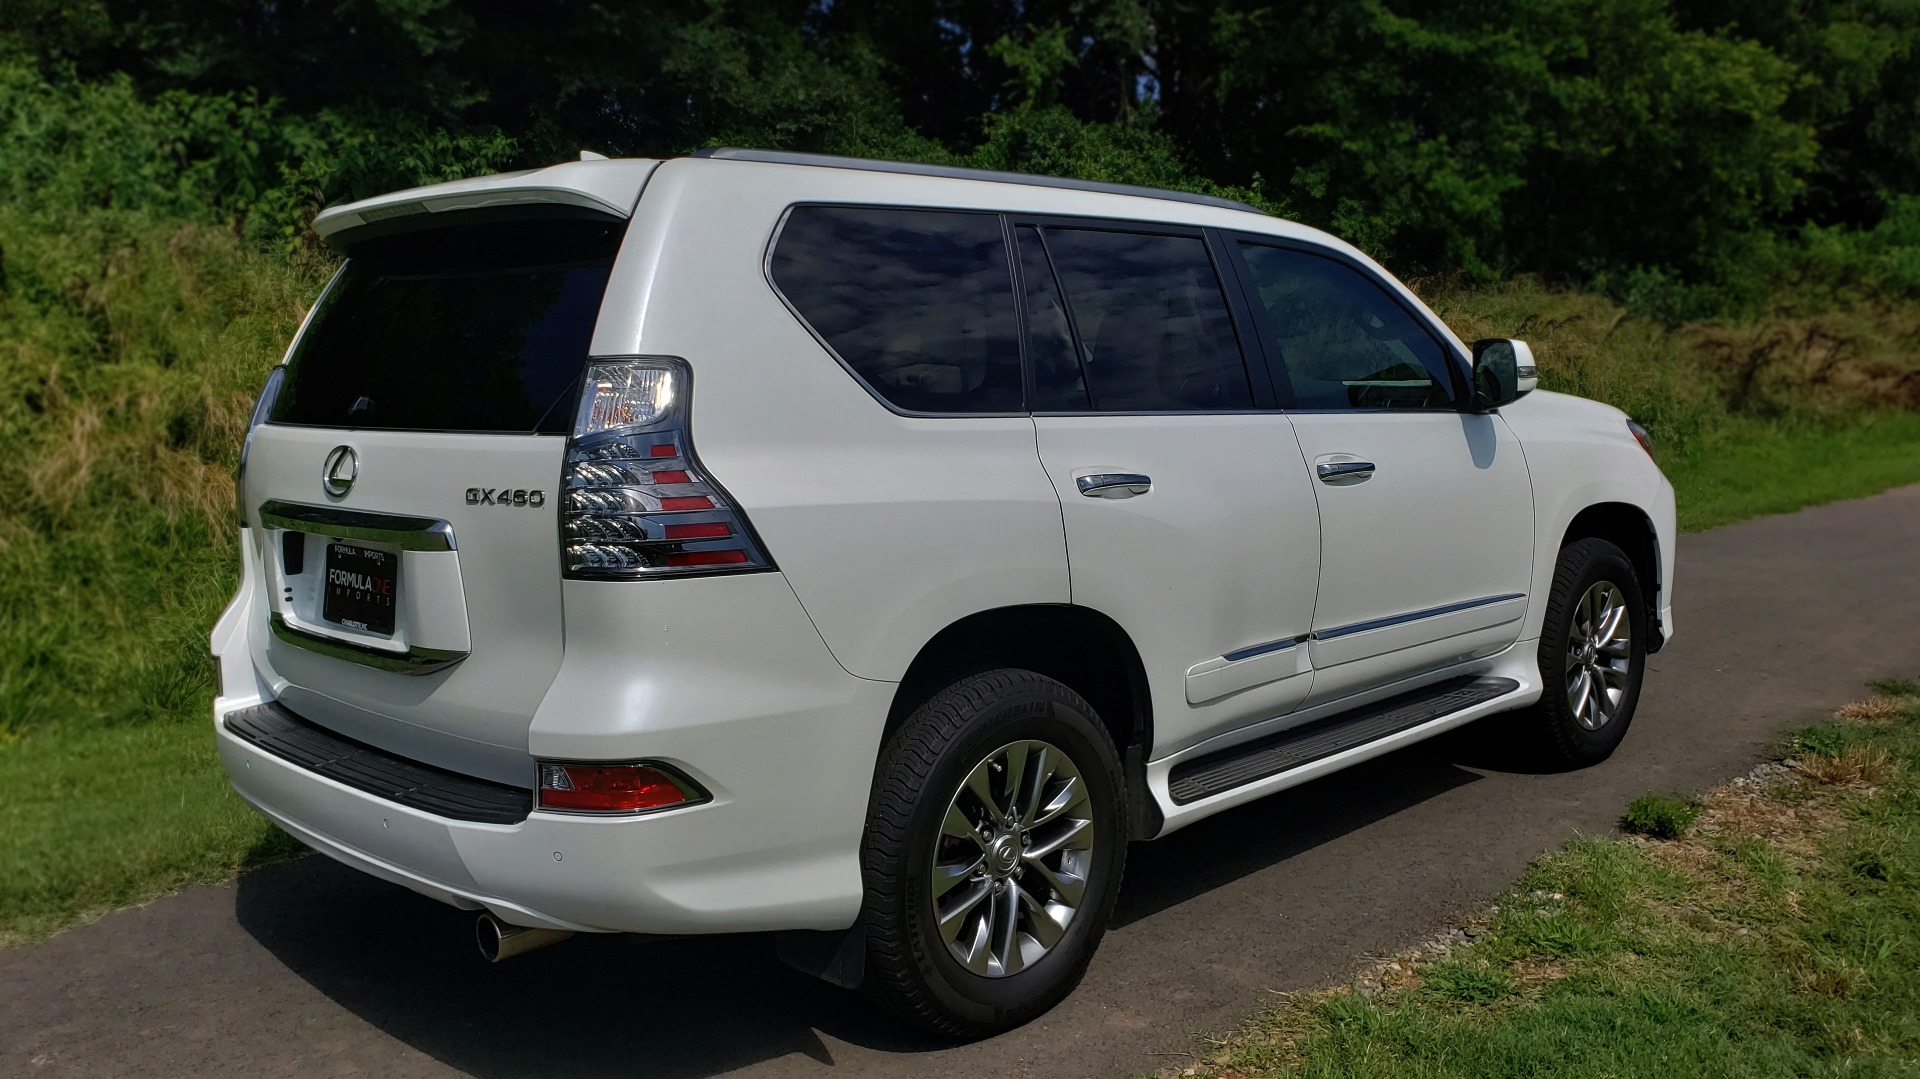 Used 2019 Lexus GX 460 LUXURY 4WD / DRVR SPRT PKG / MARK LEV SND / DYN CRUISE for sale Sold at Formula Imports in Charlotte NC 28227 6